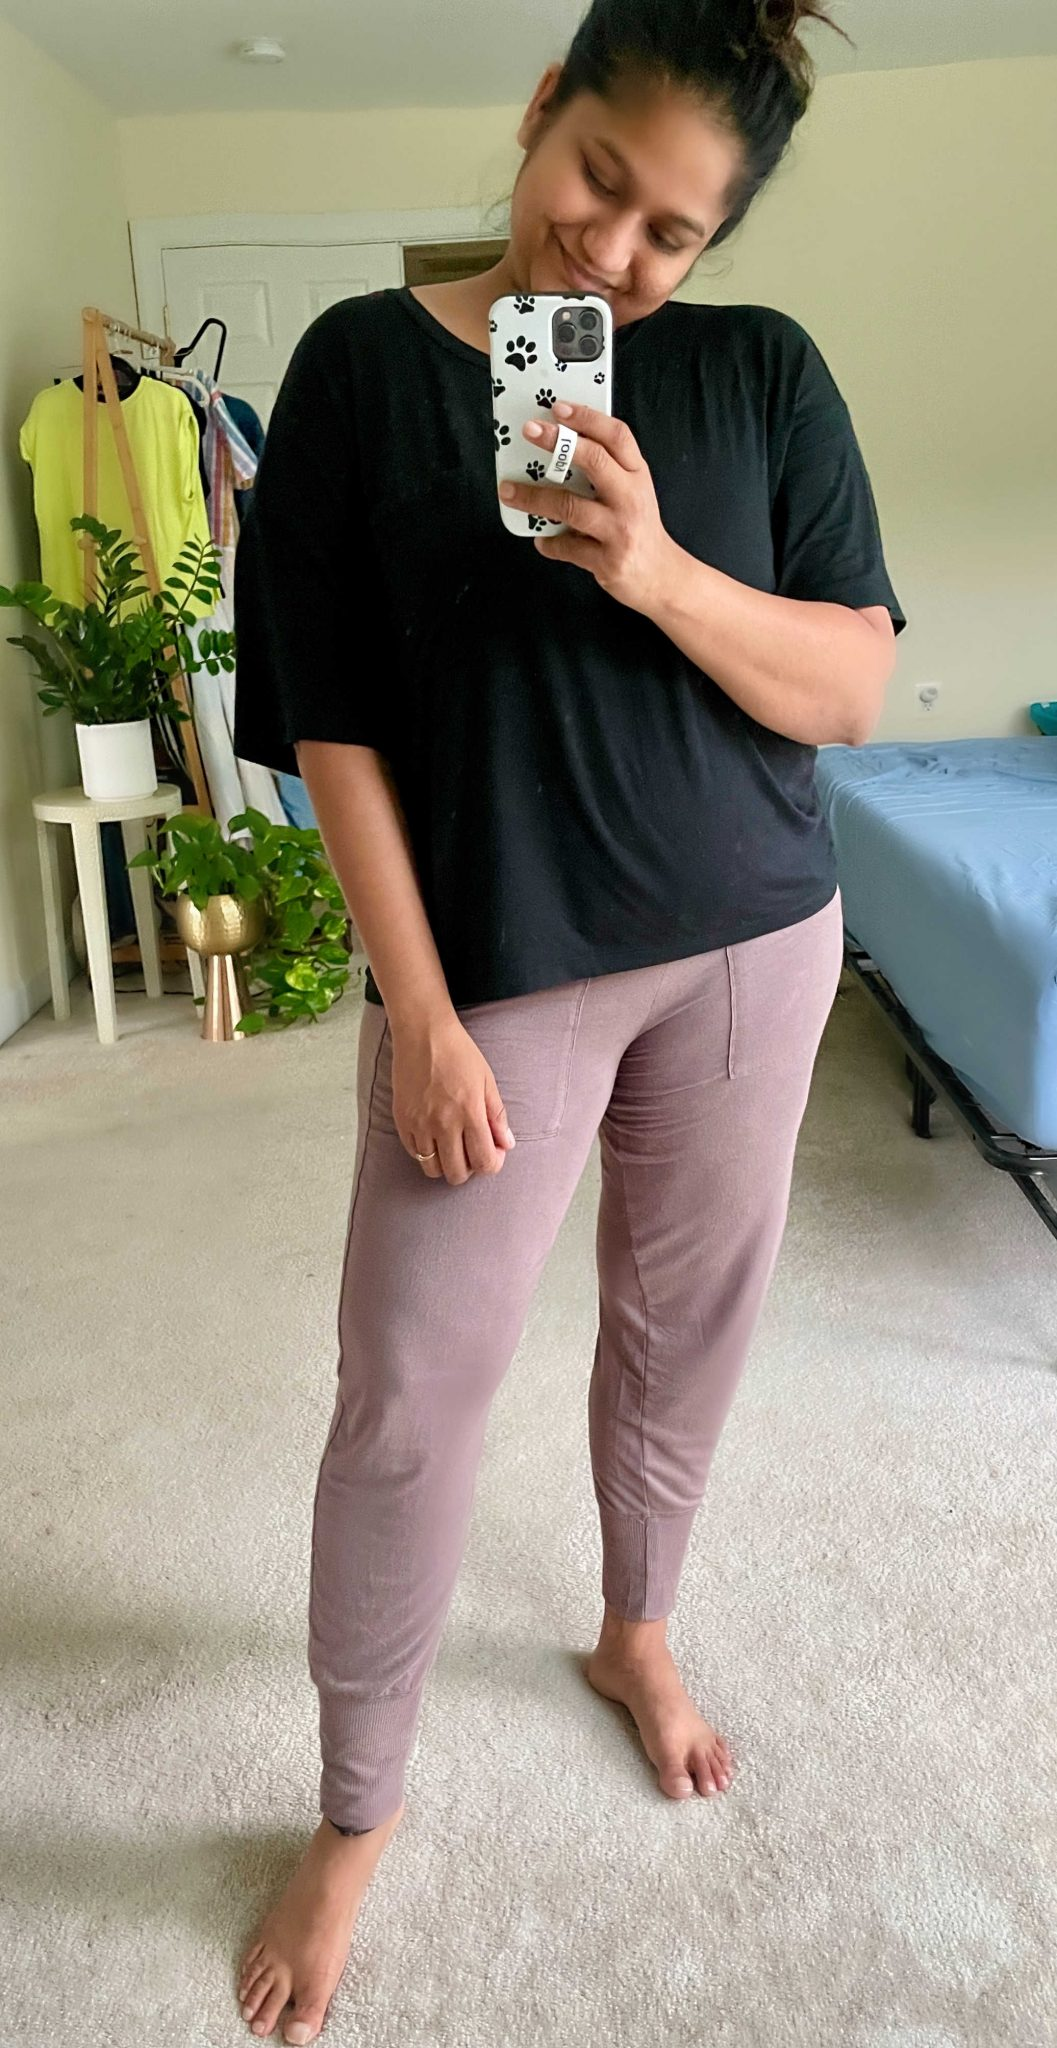 Best Postpartum Joggers- Wearing Aerie Real Soft Foldover Jogger, Arie Real soft cropped Tee   Postpartum Pants by popular Maryland modest fashion blog, Dreaming Loud: image of a woman wearing. black t-shirt and mauve postpartum jogger pants.